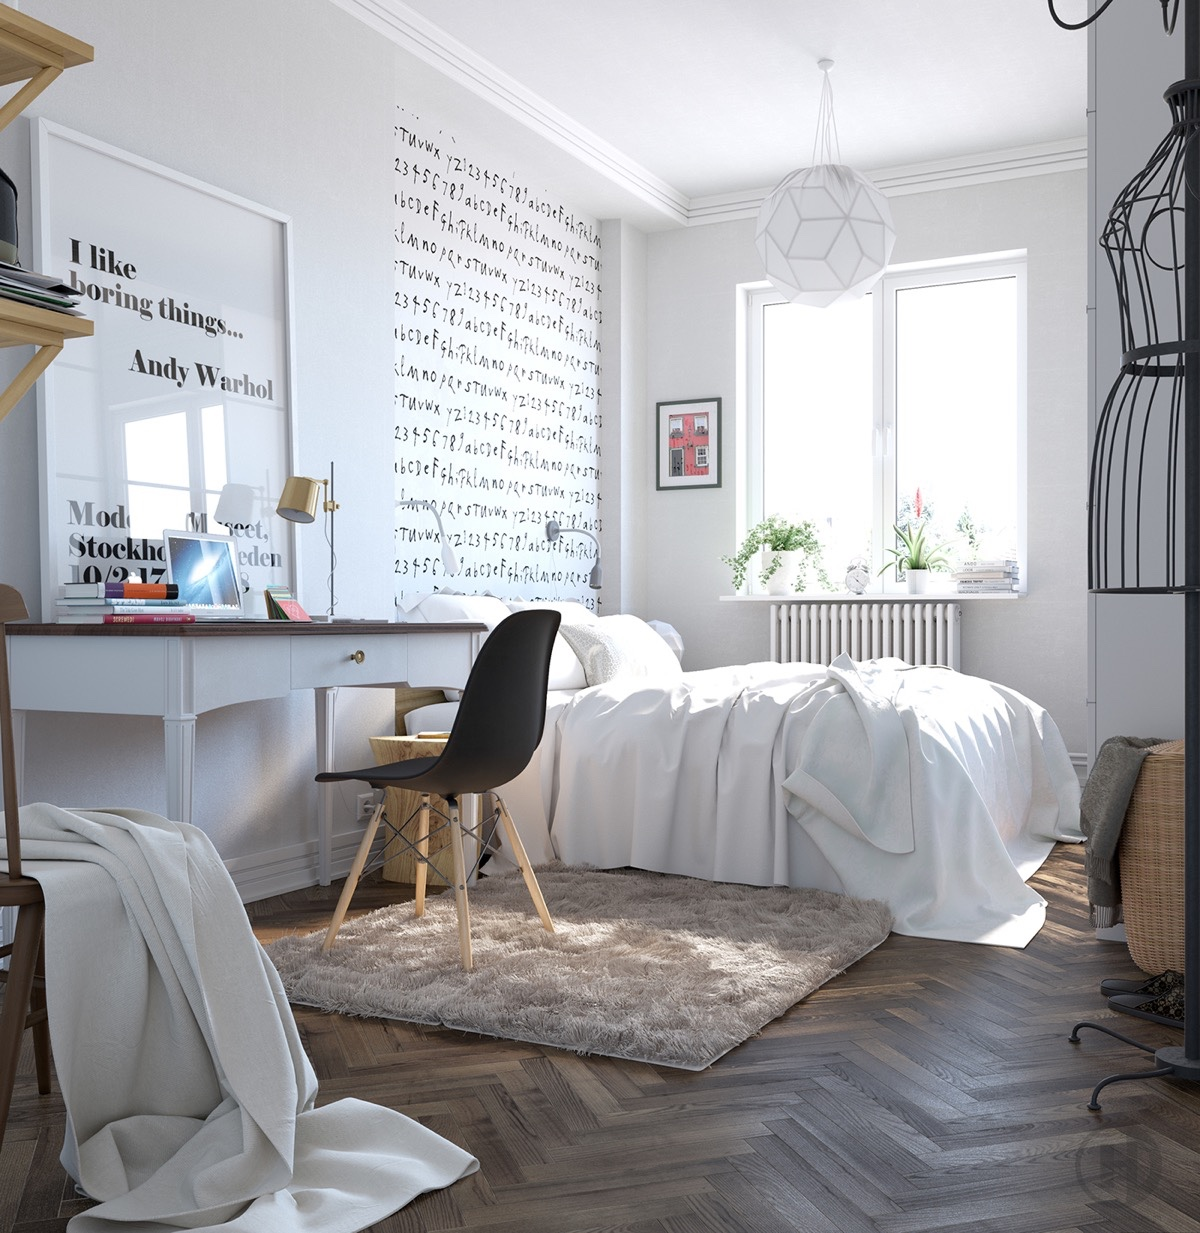 modernist-scandinavian-bedroom-design.jpg